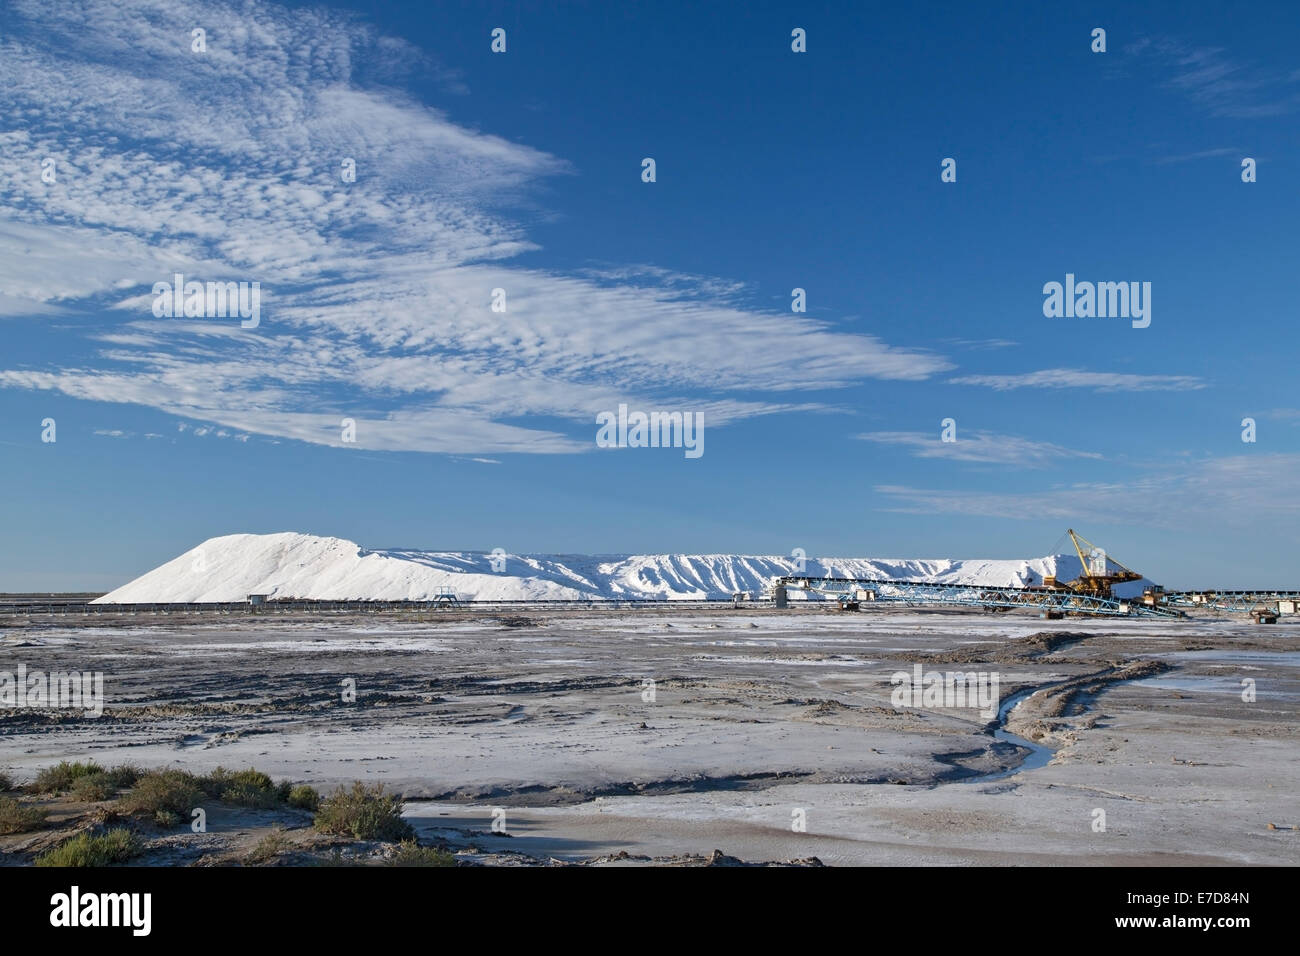 salt factory with mountain of white salt against a blue sky, Camargue, Rhone delta, France, Europe - Stock Image